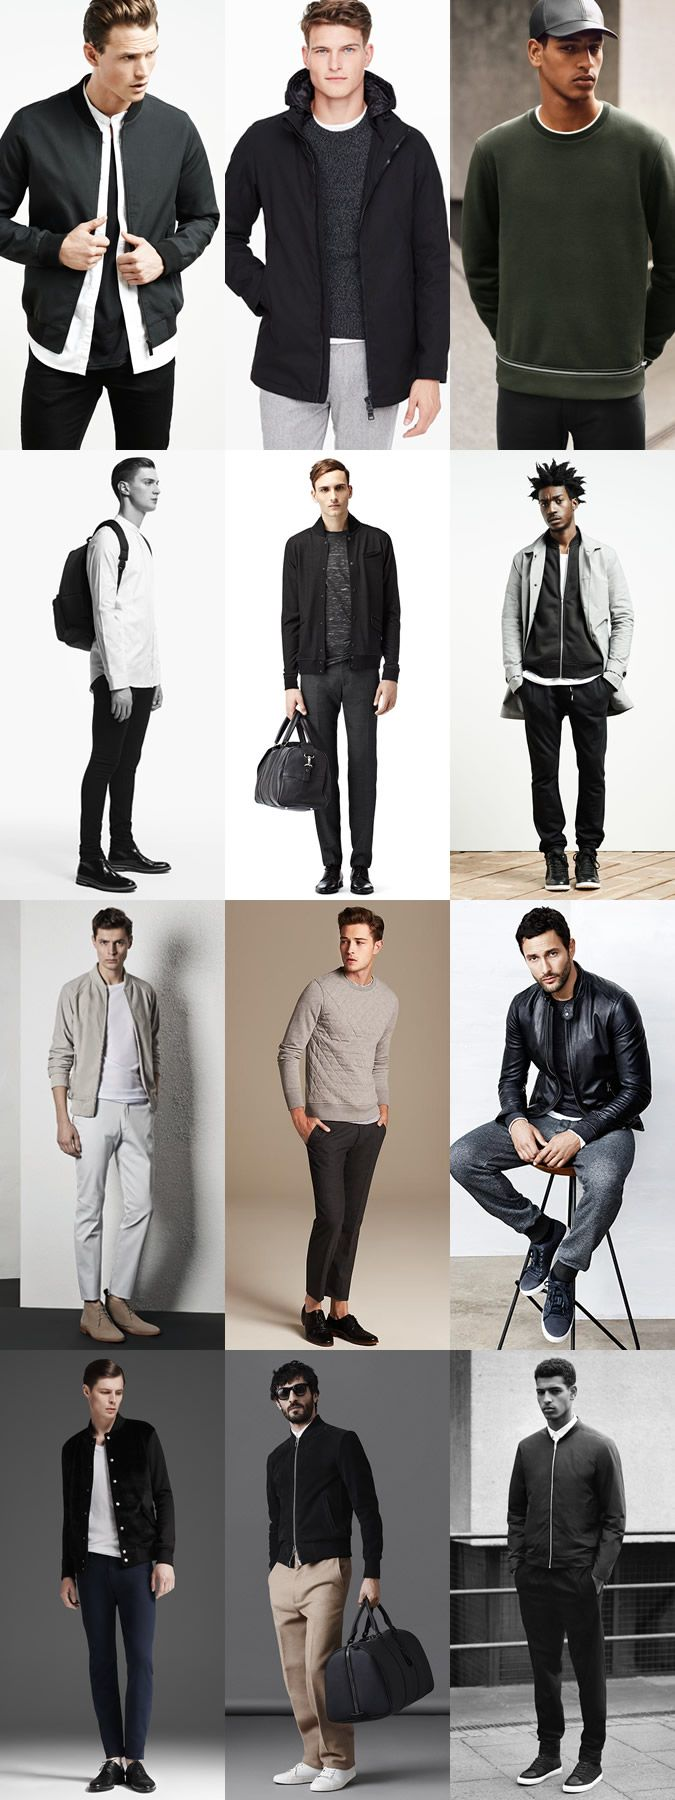 18 Best Images About Minimal Men Outfit On Pinterest Vintage 5 Seconds Of Summer And Blazers